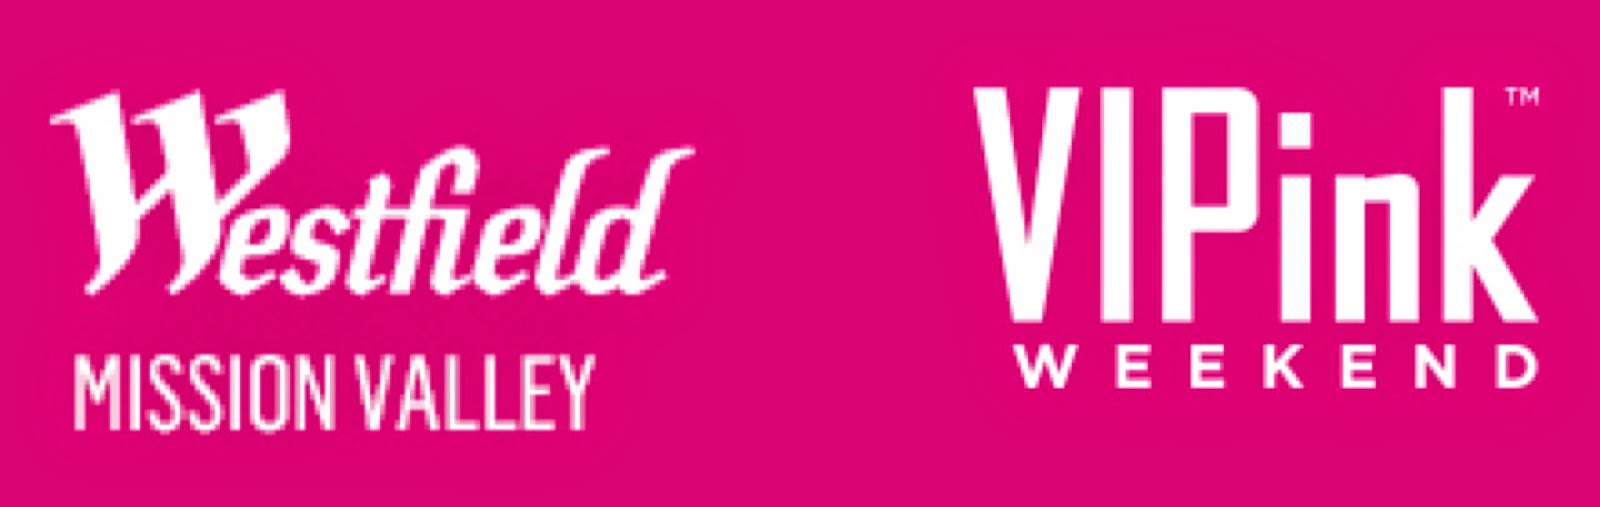 Westfield Mission Valley Bright Pink, Bright Pink fundraiser in san diego, VIPink weekend